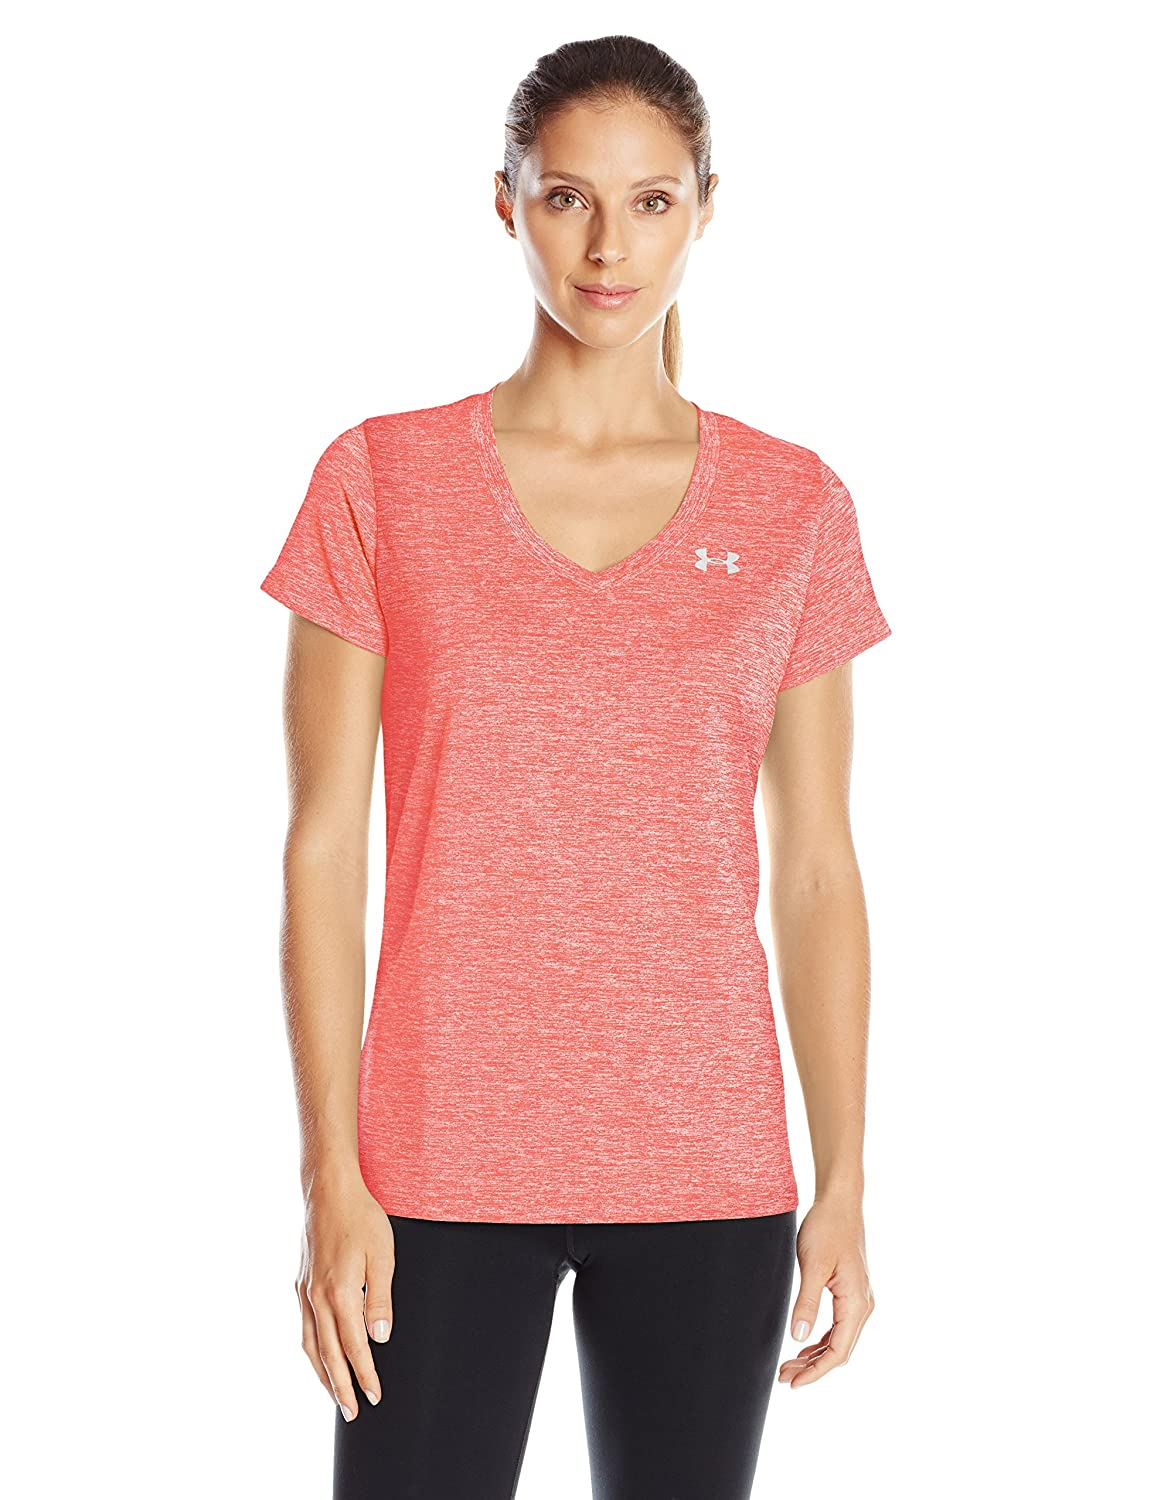 Under Armour Tech - Twist T-Shirt Femme 1258568